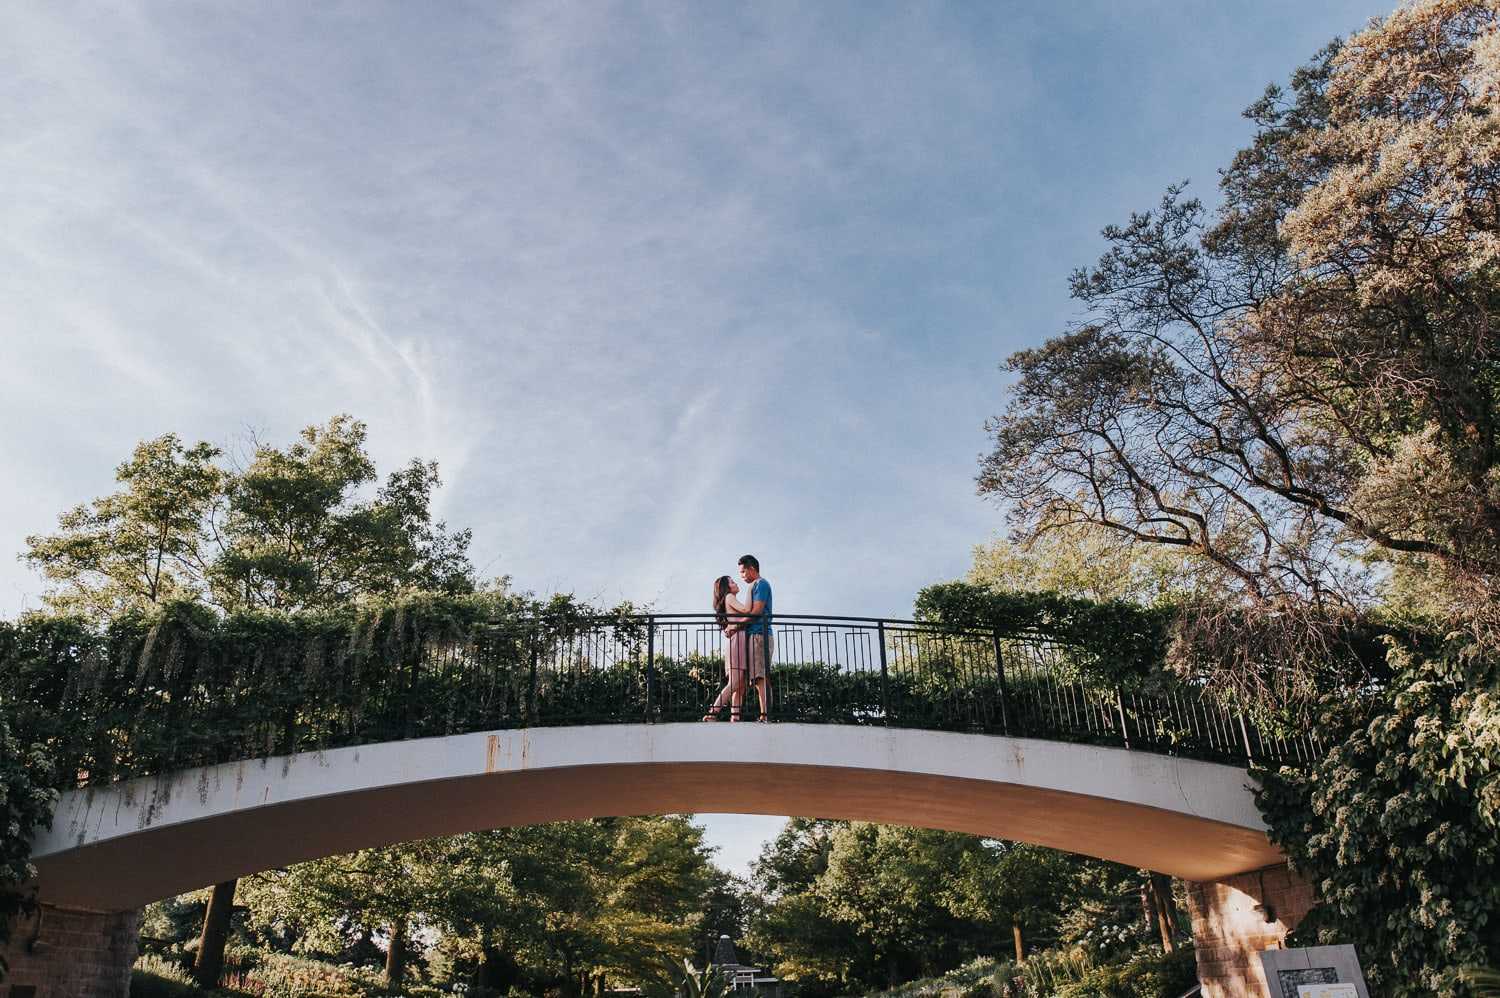 Dreamy sunlight Botanical garden engagement shoot